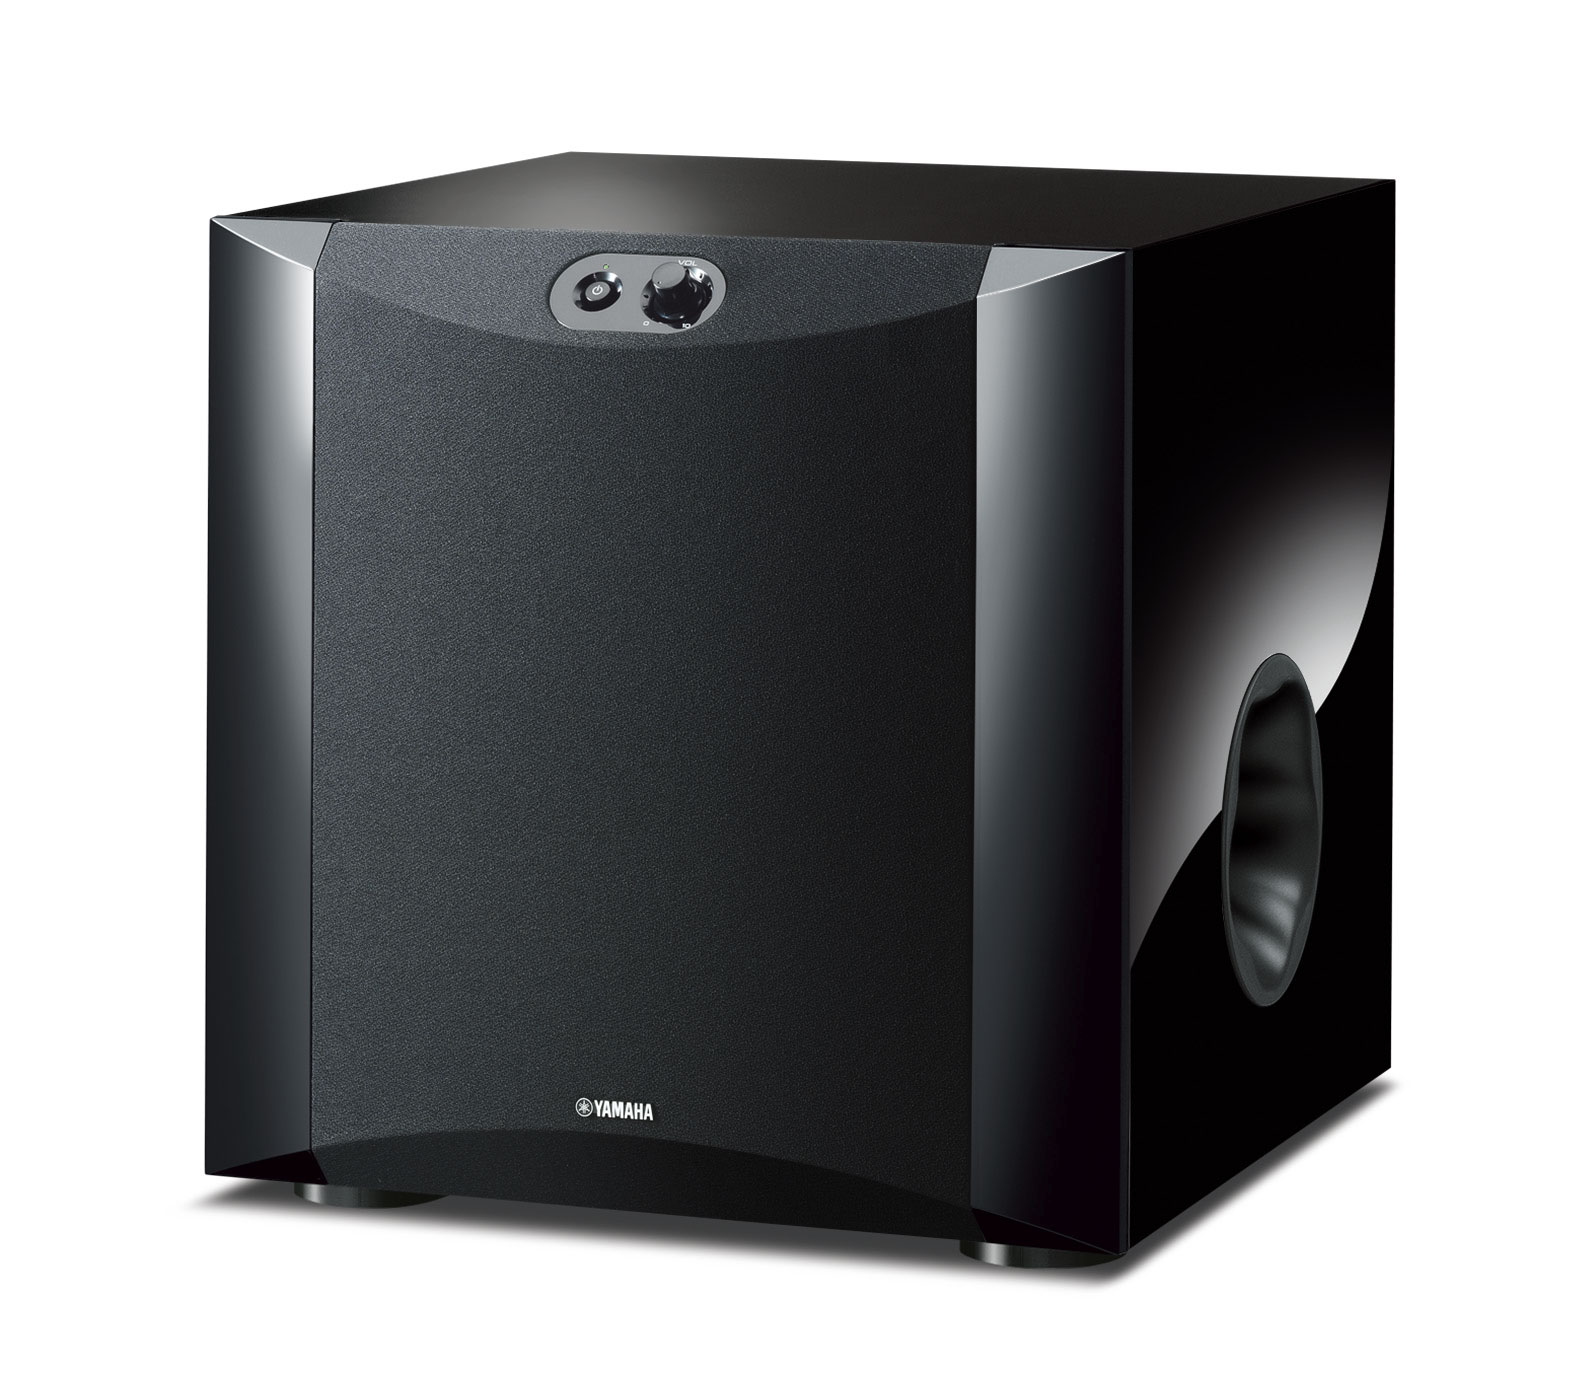 yamaha ns sw300 and ns sw200 subwoofers provide audiophile. Black Bedroom Furniture Sets. Home Design Ideas